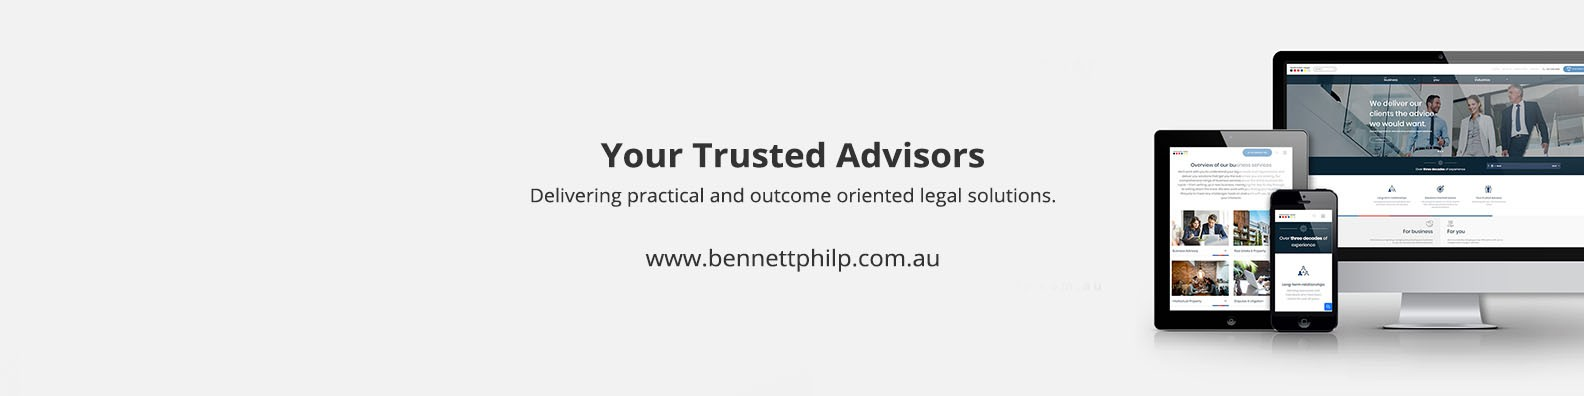 Bennett & Philp Lawyers | LinkedIn